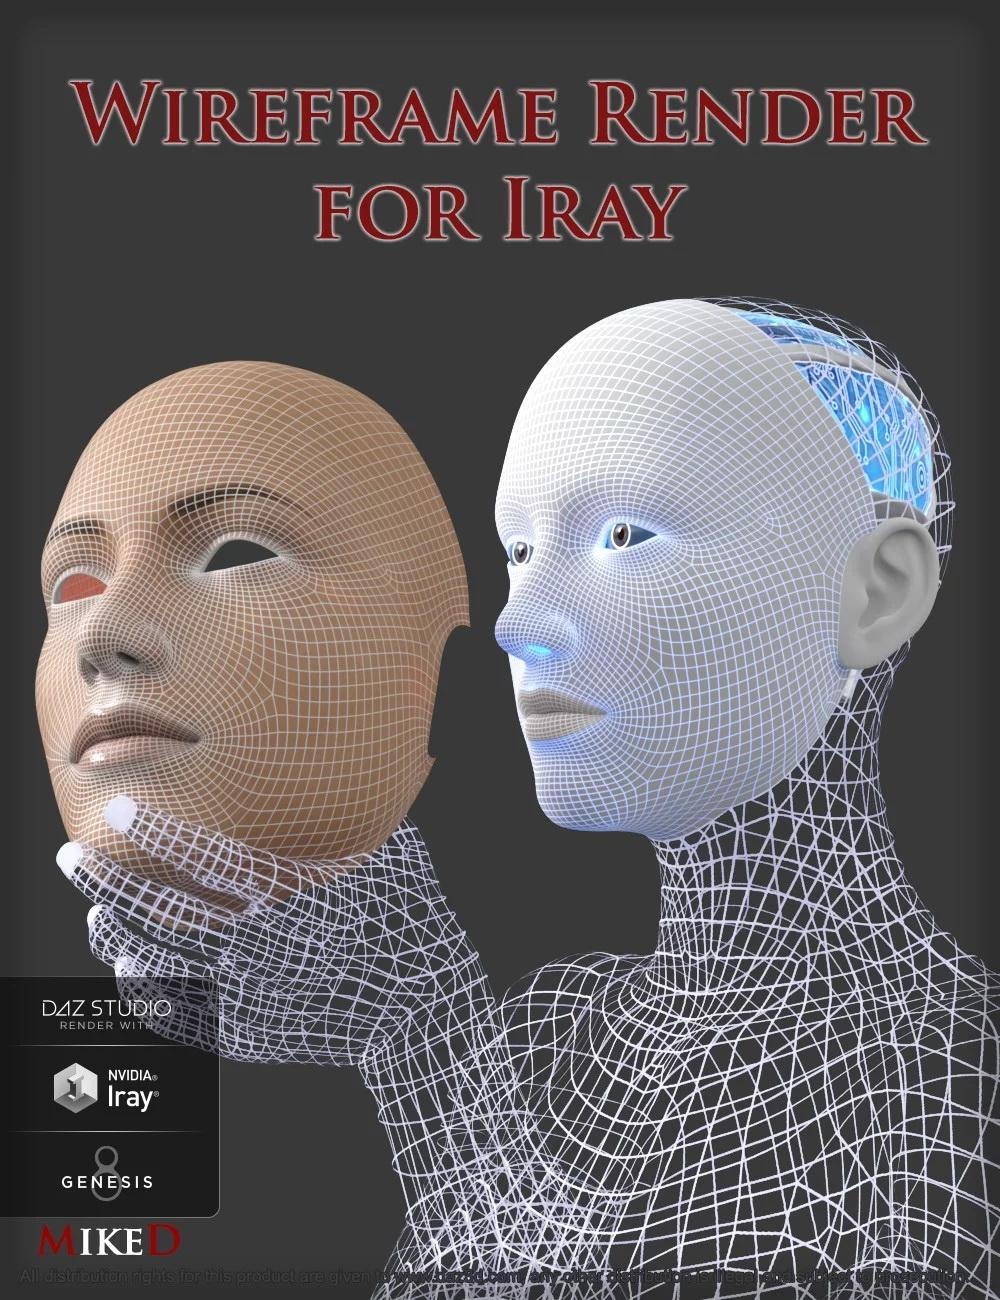 Wireframe Render for Iray